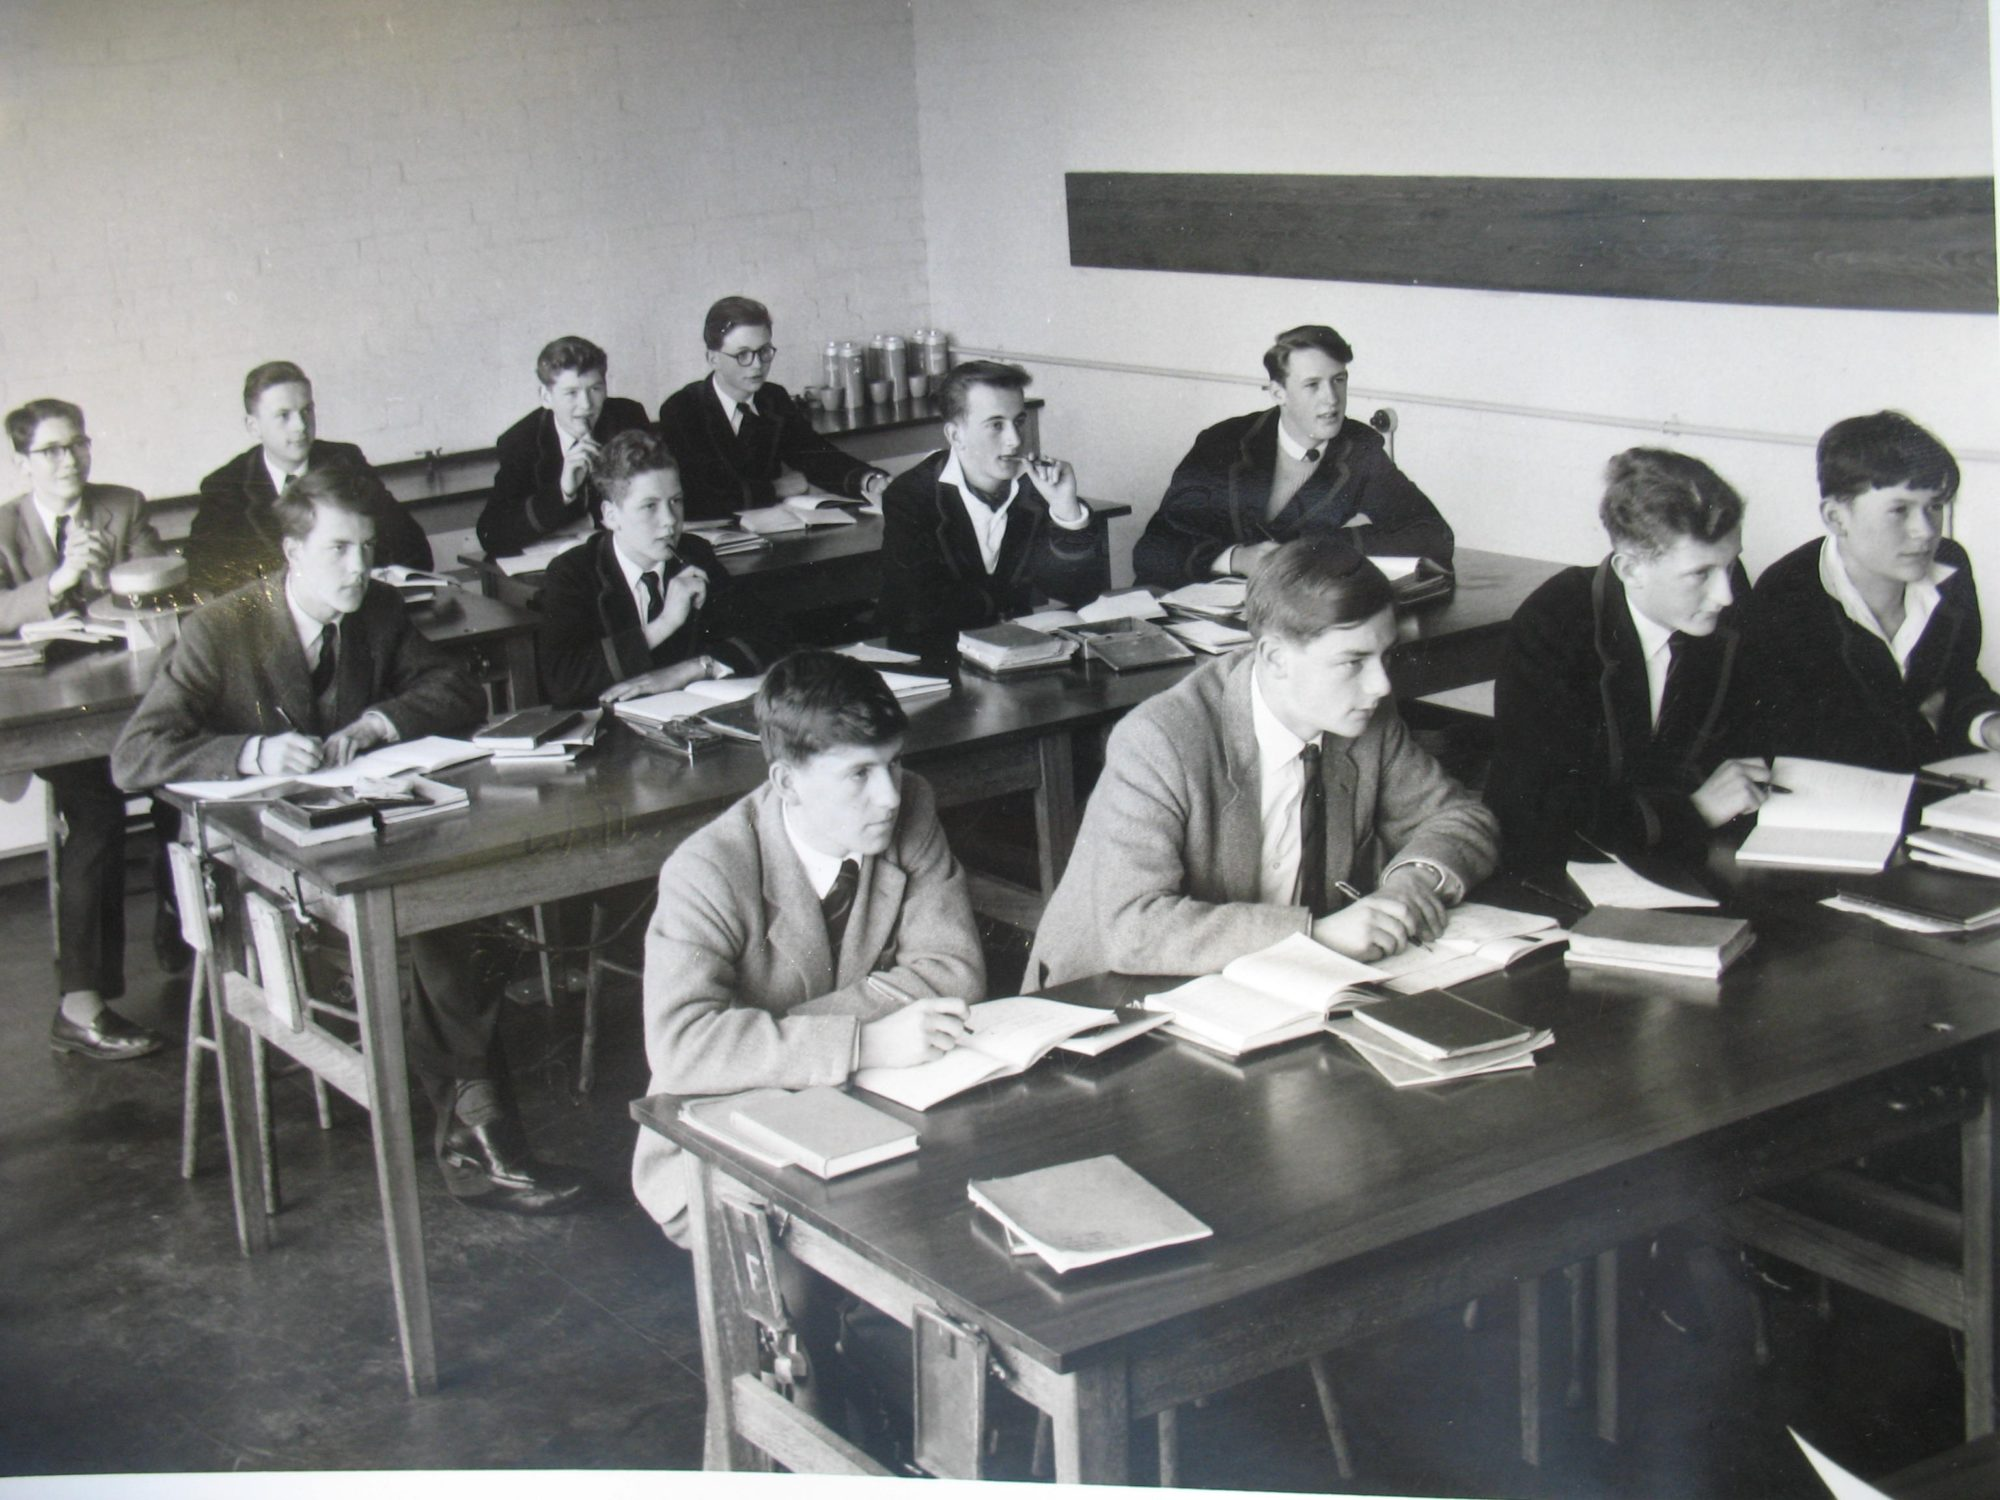 Magdalen College School pupils sitting at desks in classroom - archive photo